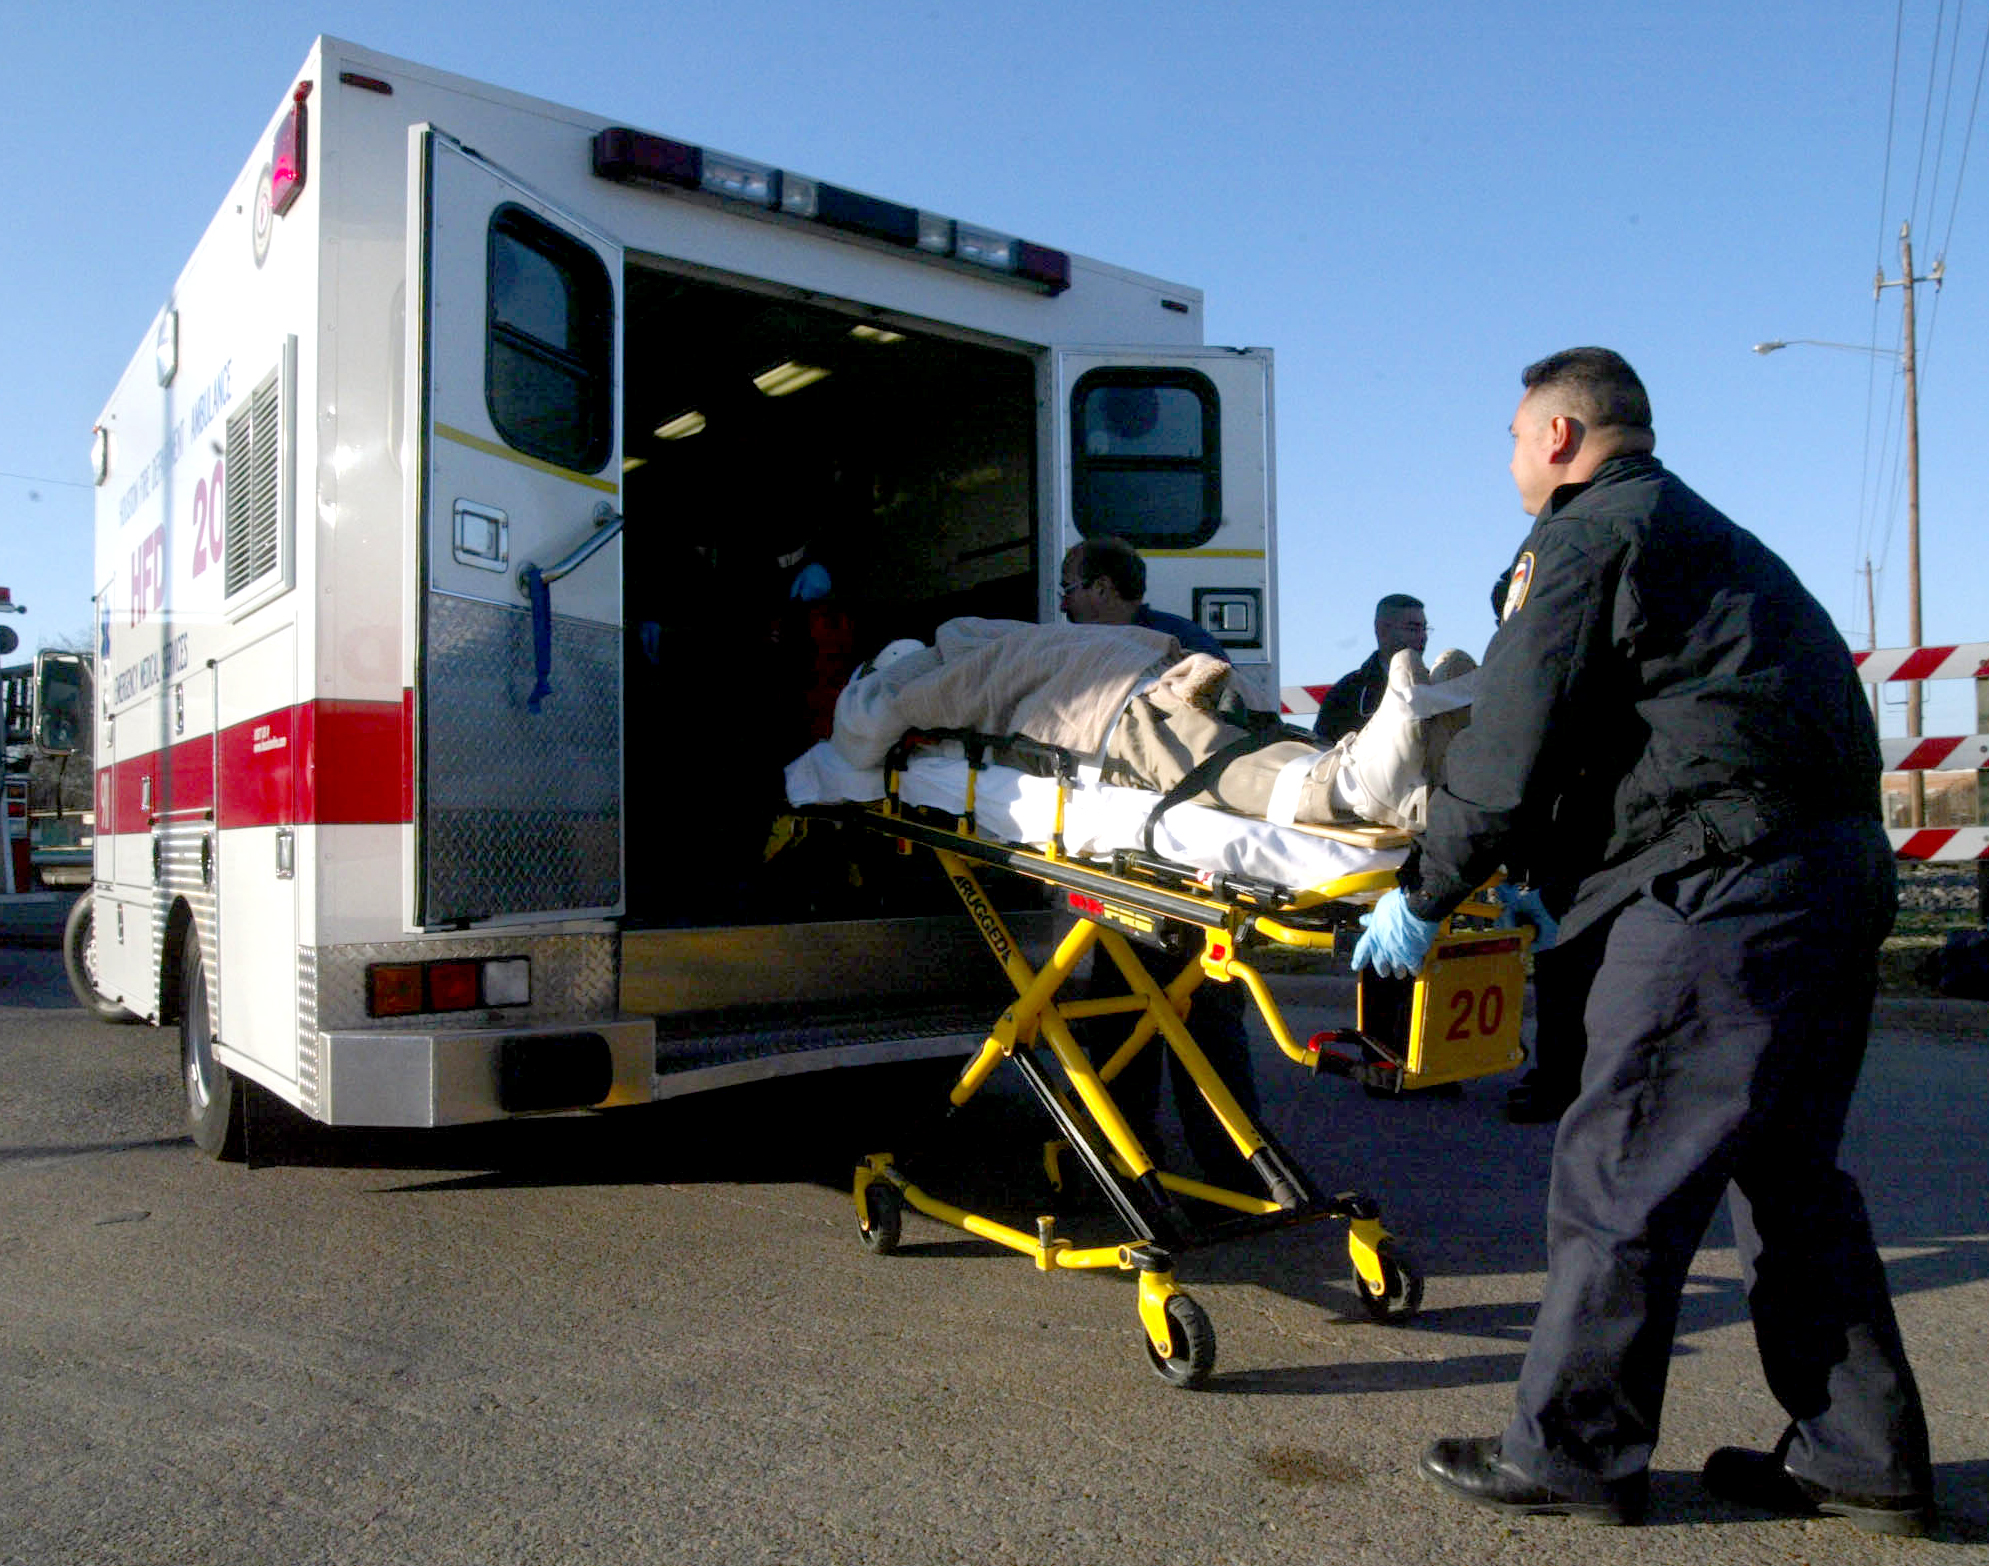 Hci accredited emt training accredited emt training xflitez Gallery